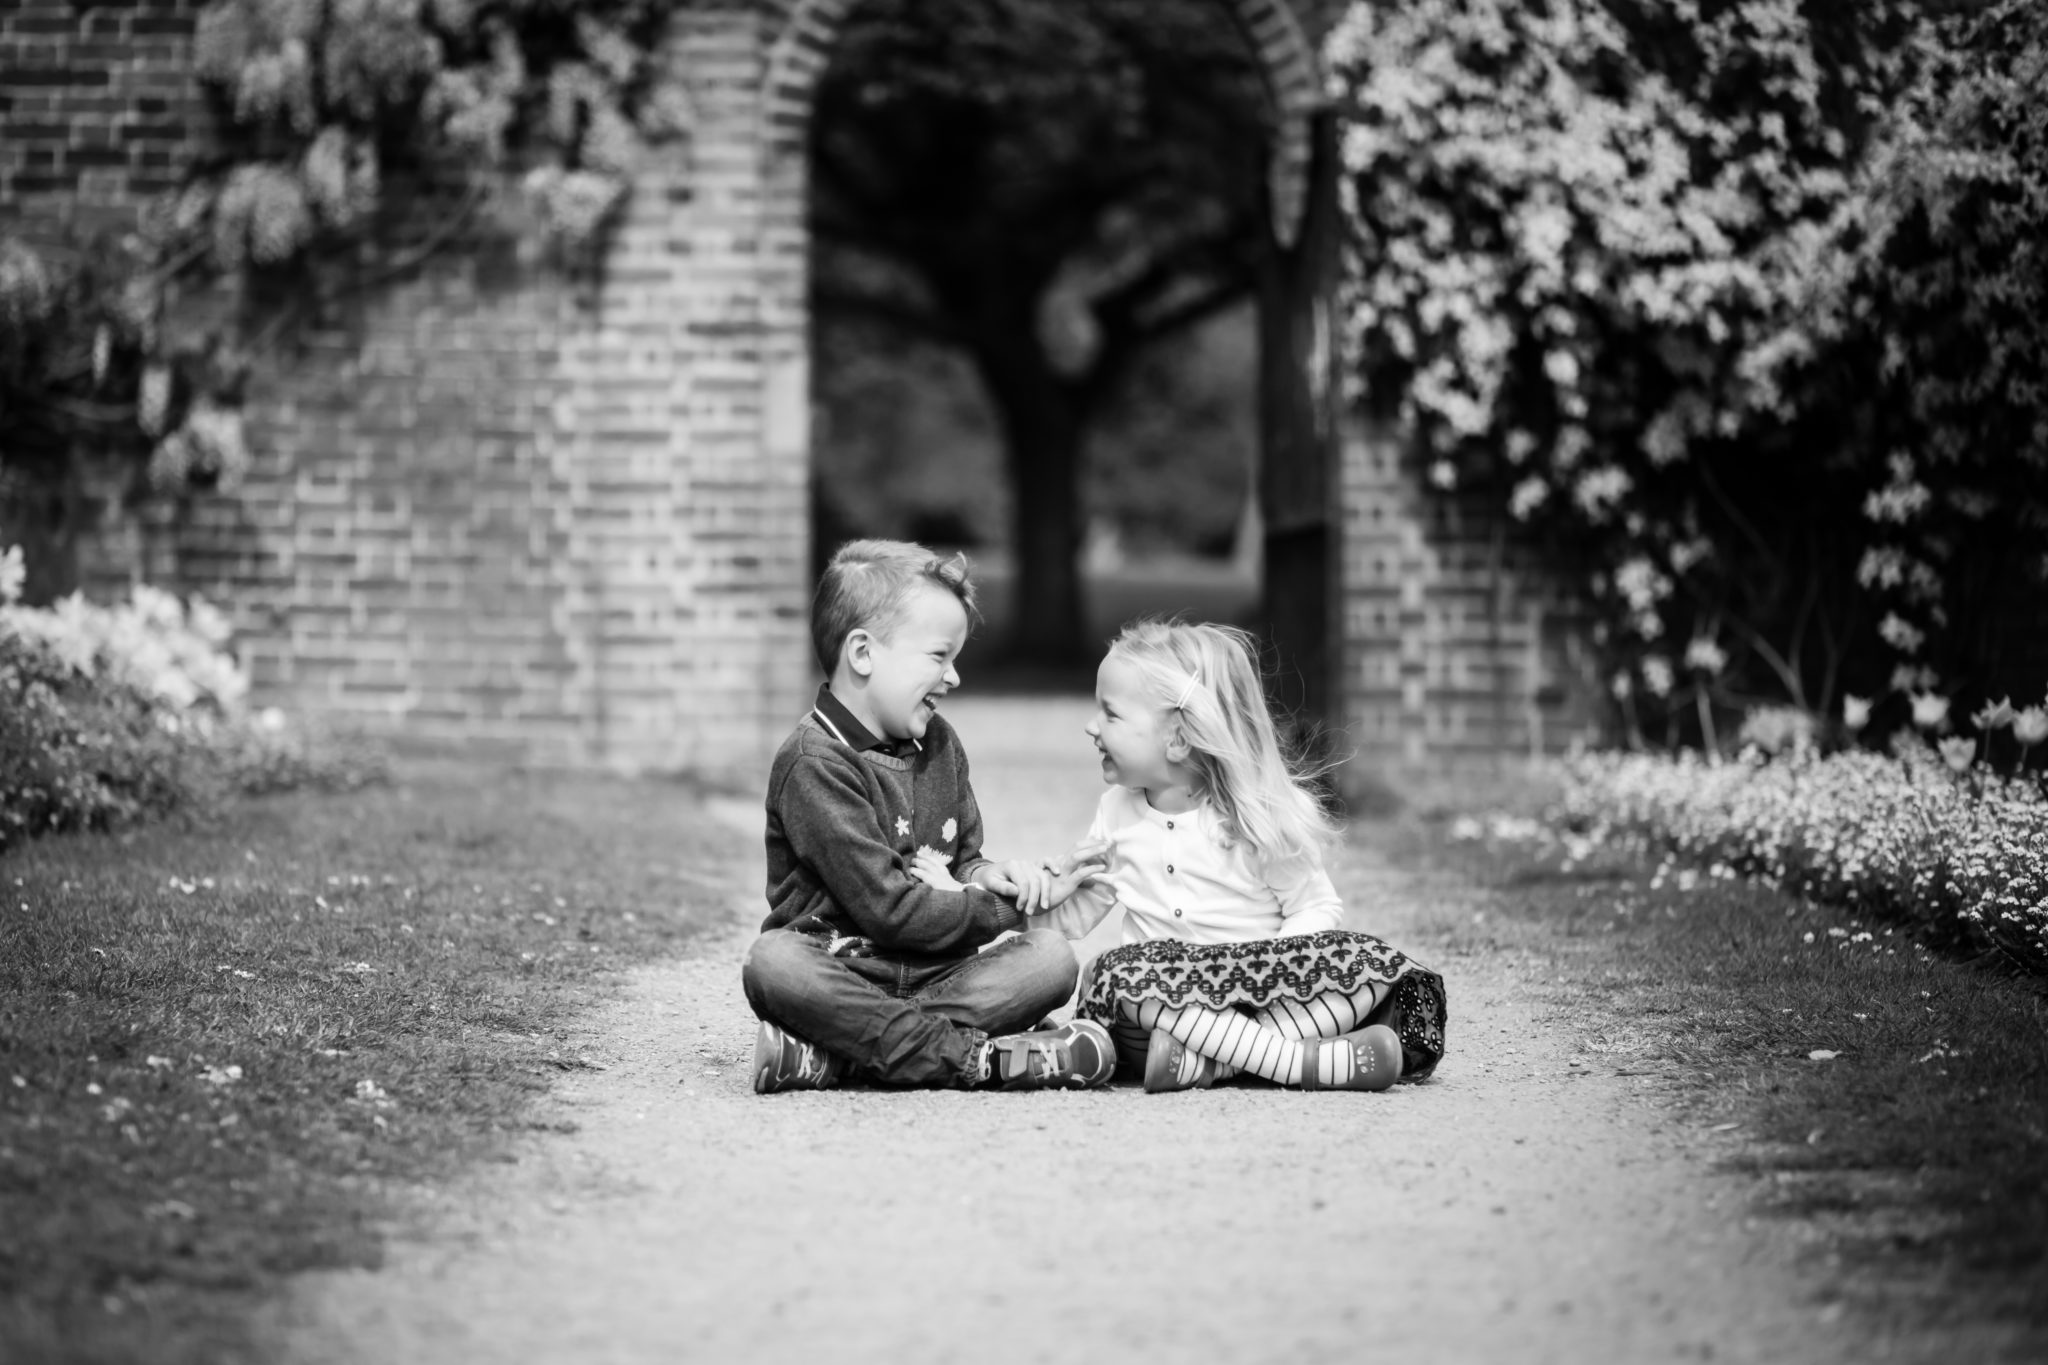 Brother and sister laughing in black and white family photo in Beckenham outdoor park